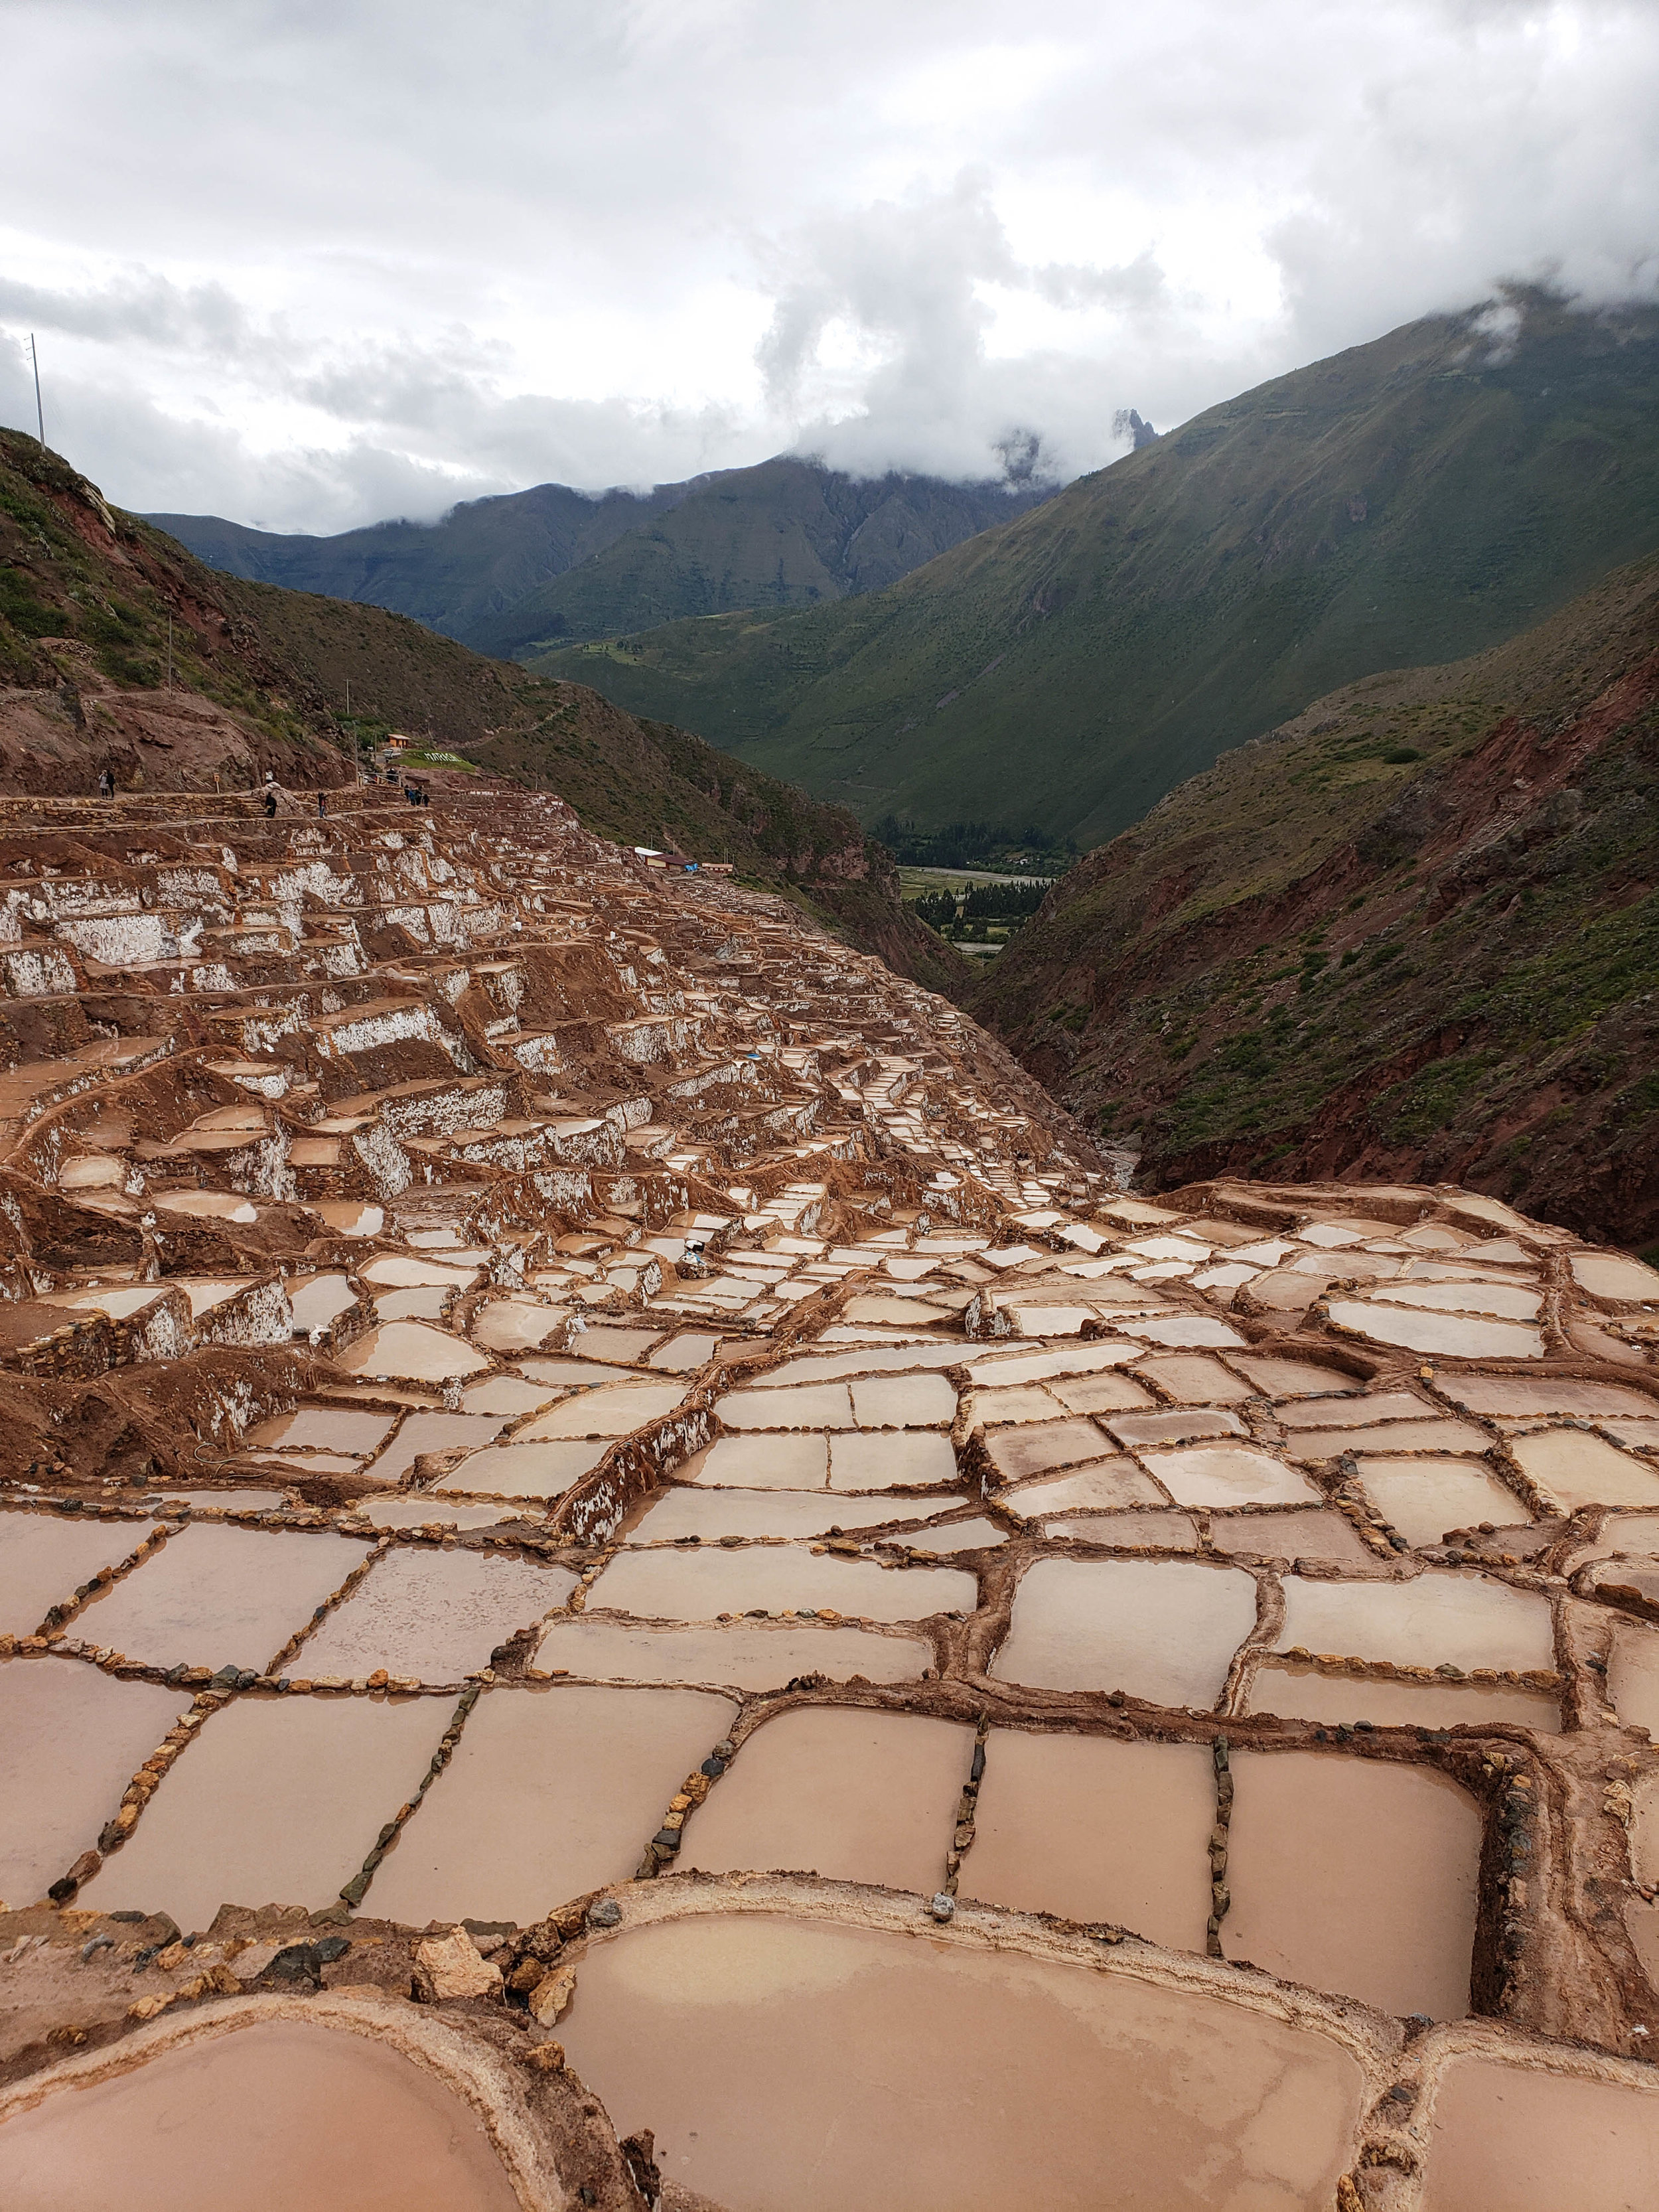 Another stop was Maras, known for its salt mines. We were there during April, which is the rainy season. Because of this, the mines looked brown since rain had carried down dirt to the ponds. I've been here once before when the mines were super white and it's beautiful! Make sure to buy salt from here, it gives a delicious flavor to food and you can only get it there.